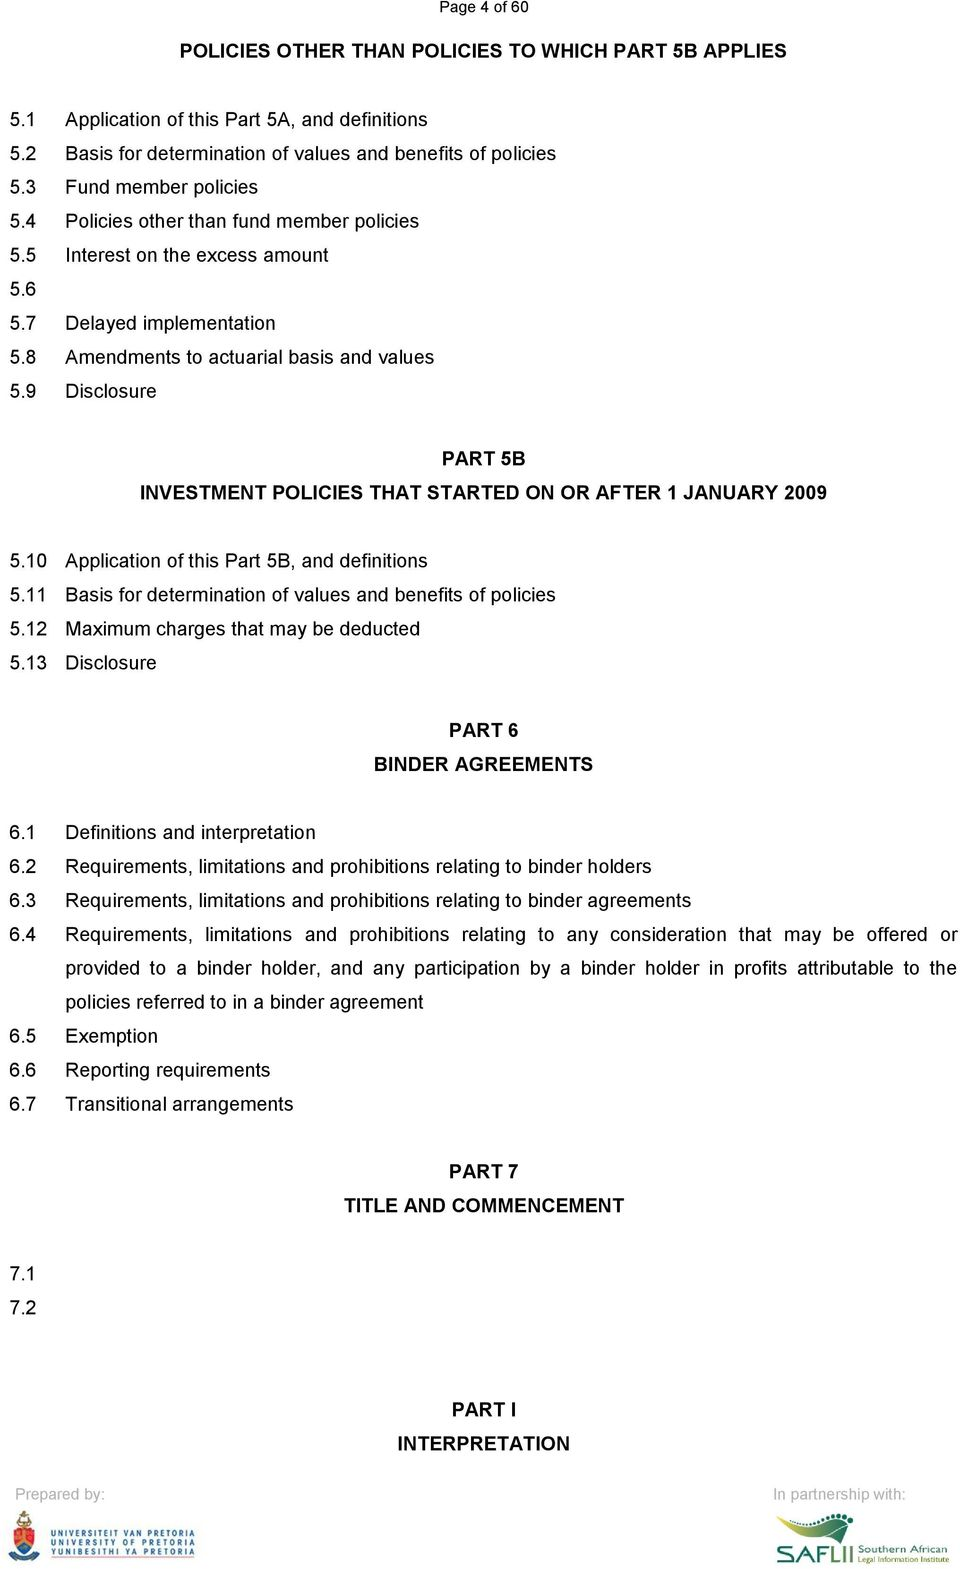 9 Disclosure PART 5B INVESTMENT POLICIES THAT STARTED ON OR AFTER 1 JANUARY 2009 5.10 Application of this Part 5B, and definitions 5.11 Basis for determination of values and benefits of policies 5.